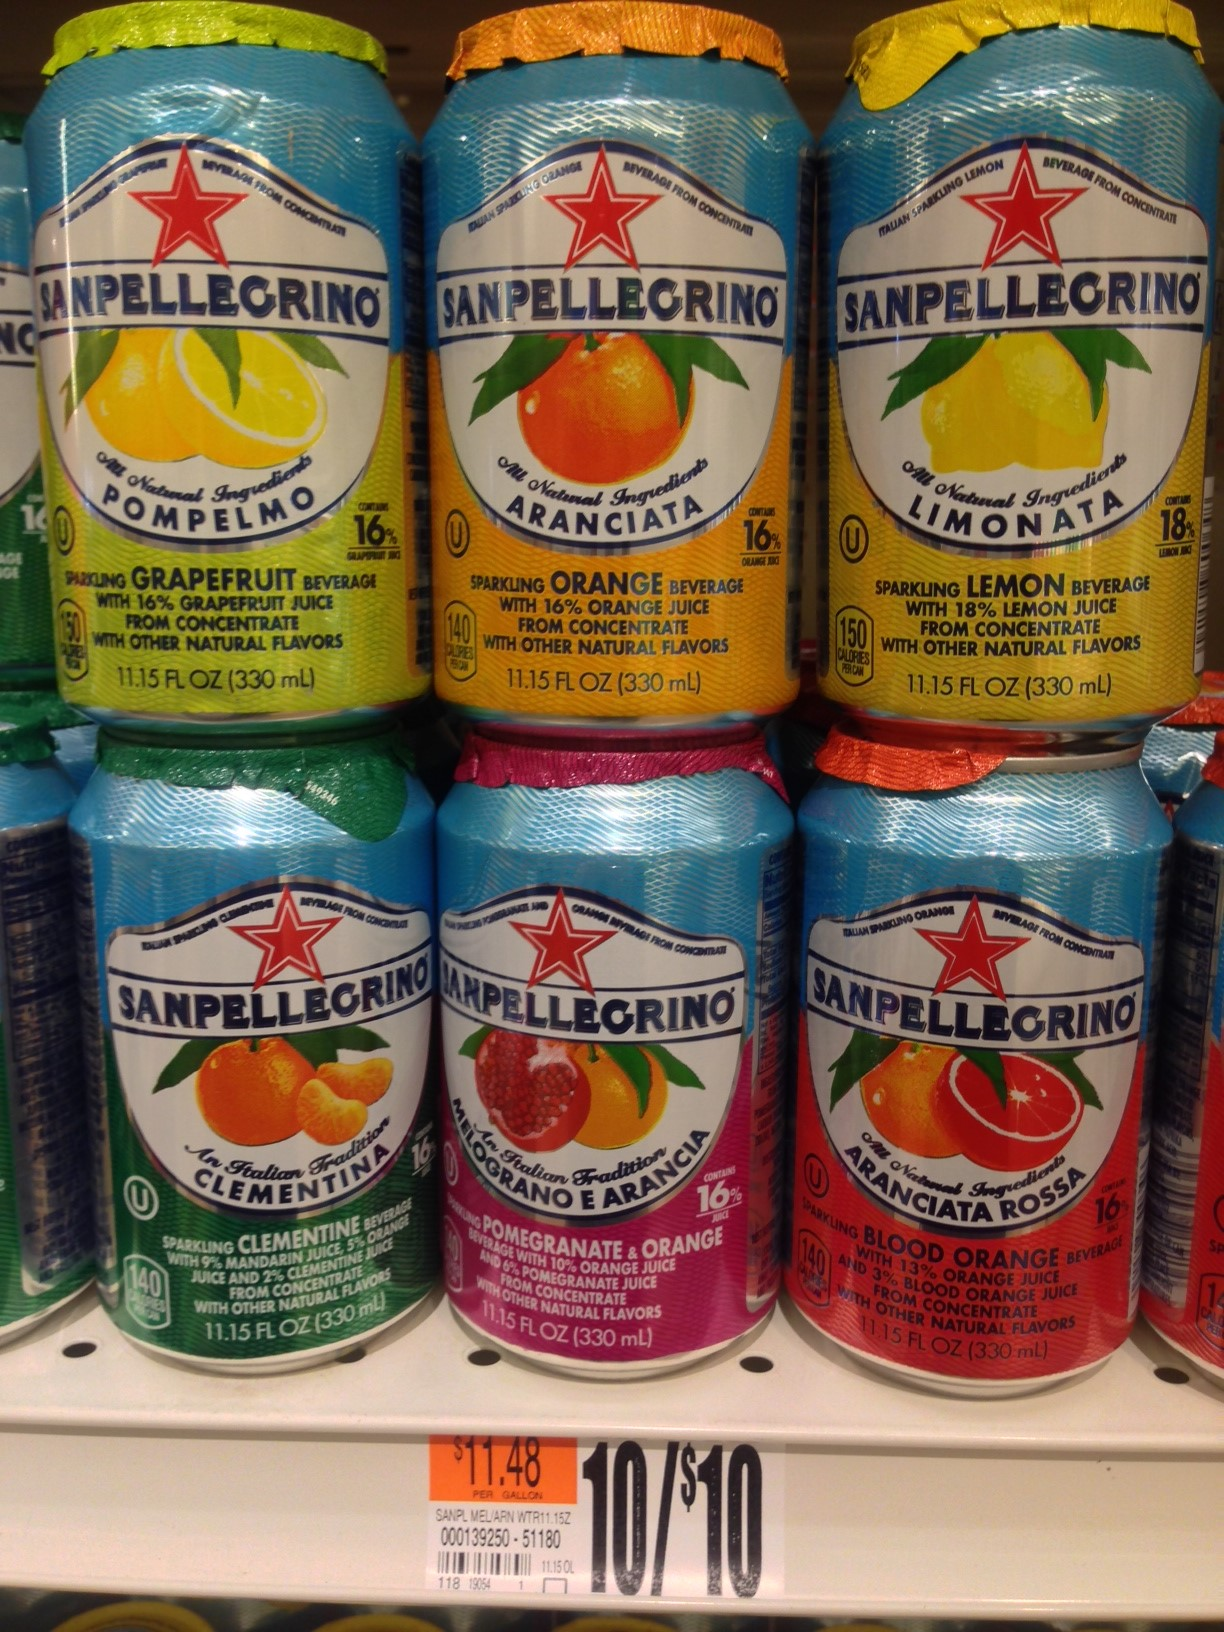 What's Your Favorite SANPELLEGRINO Flavor? | GoodMorningGloucester